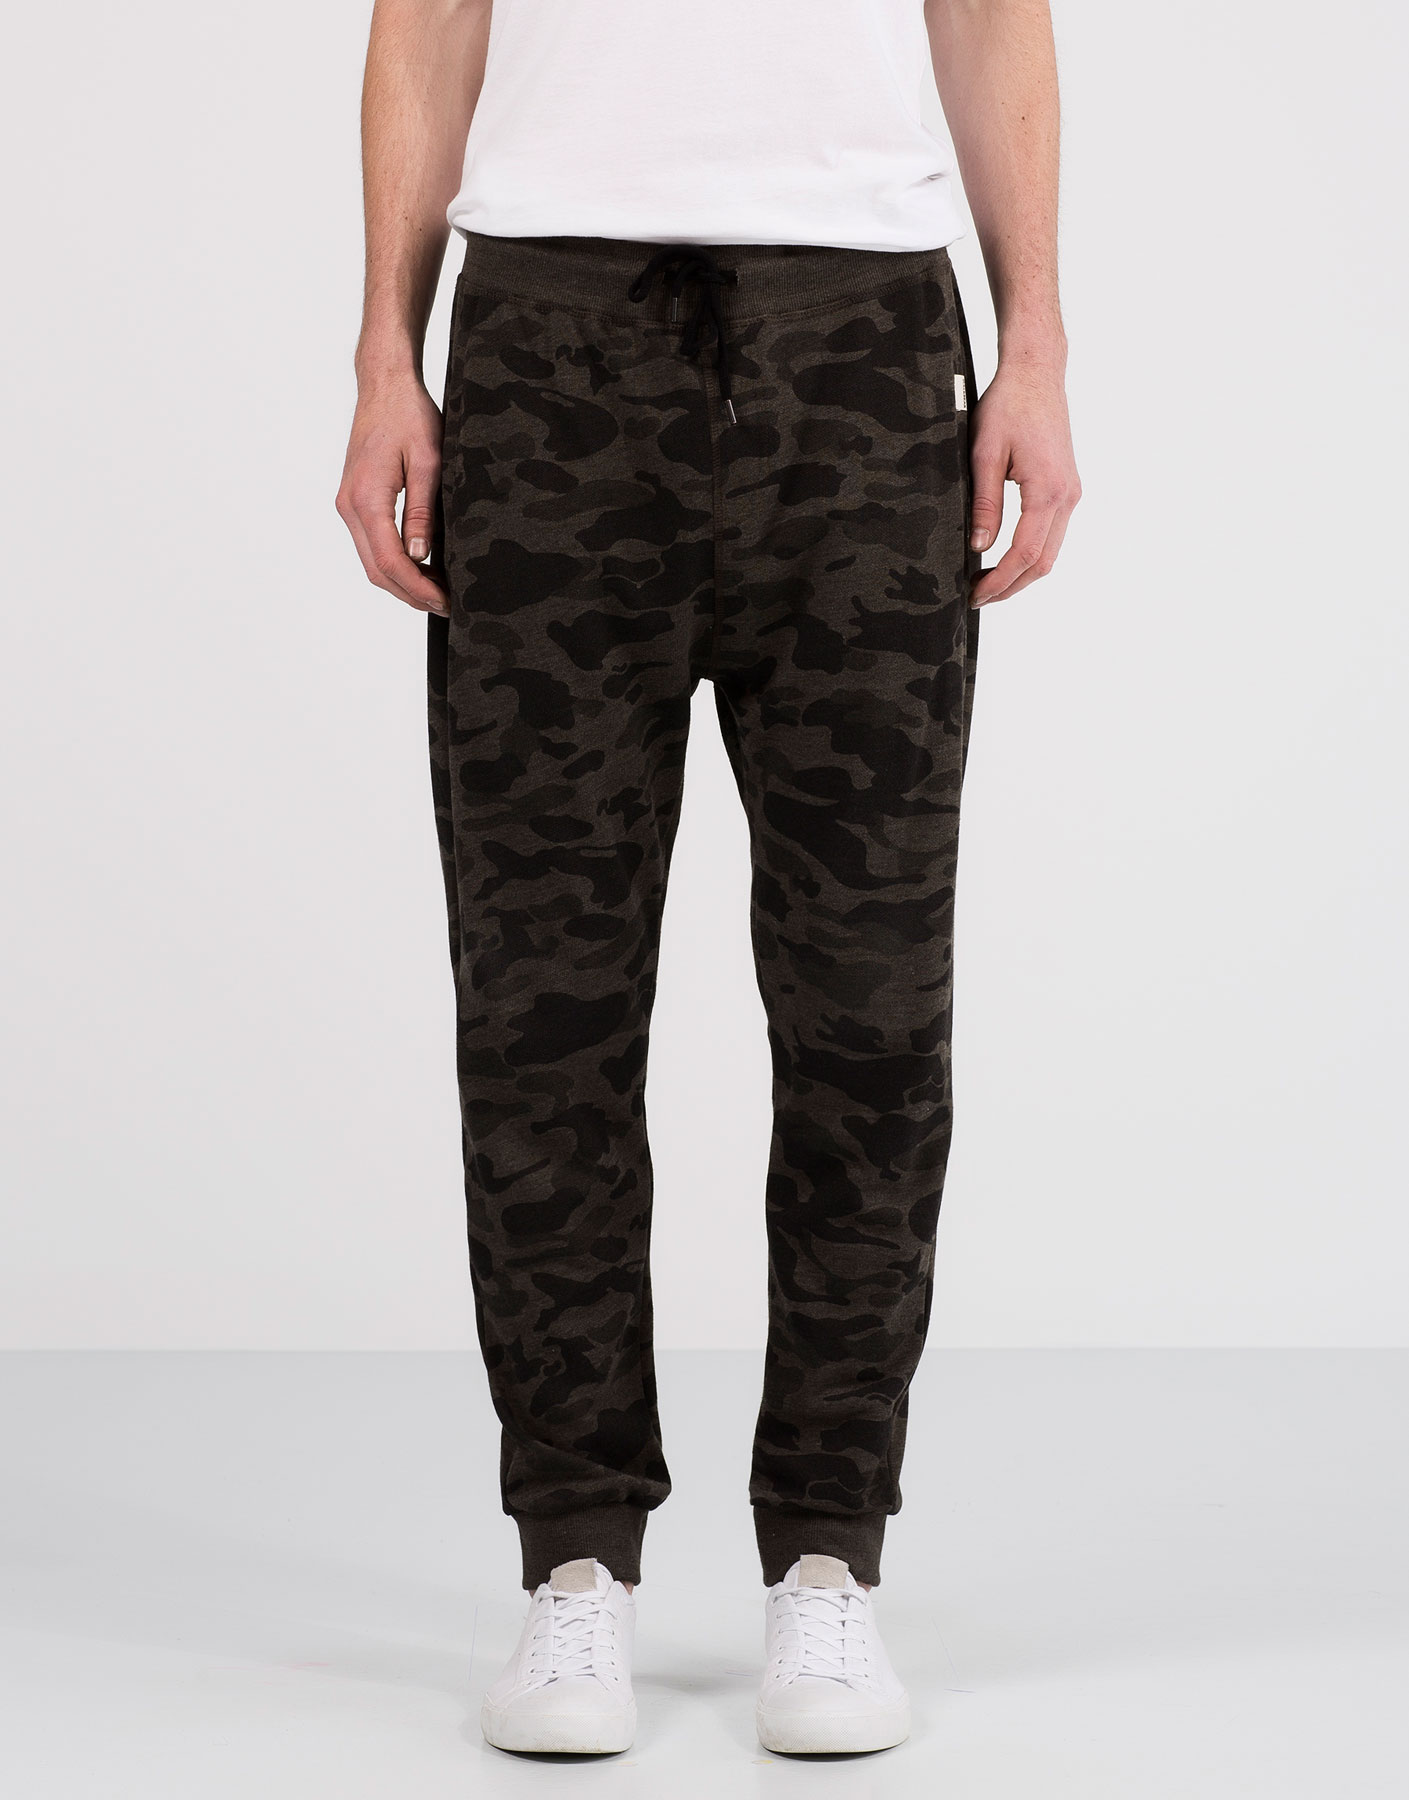 Crimped camouflage jogging trousers